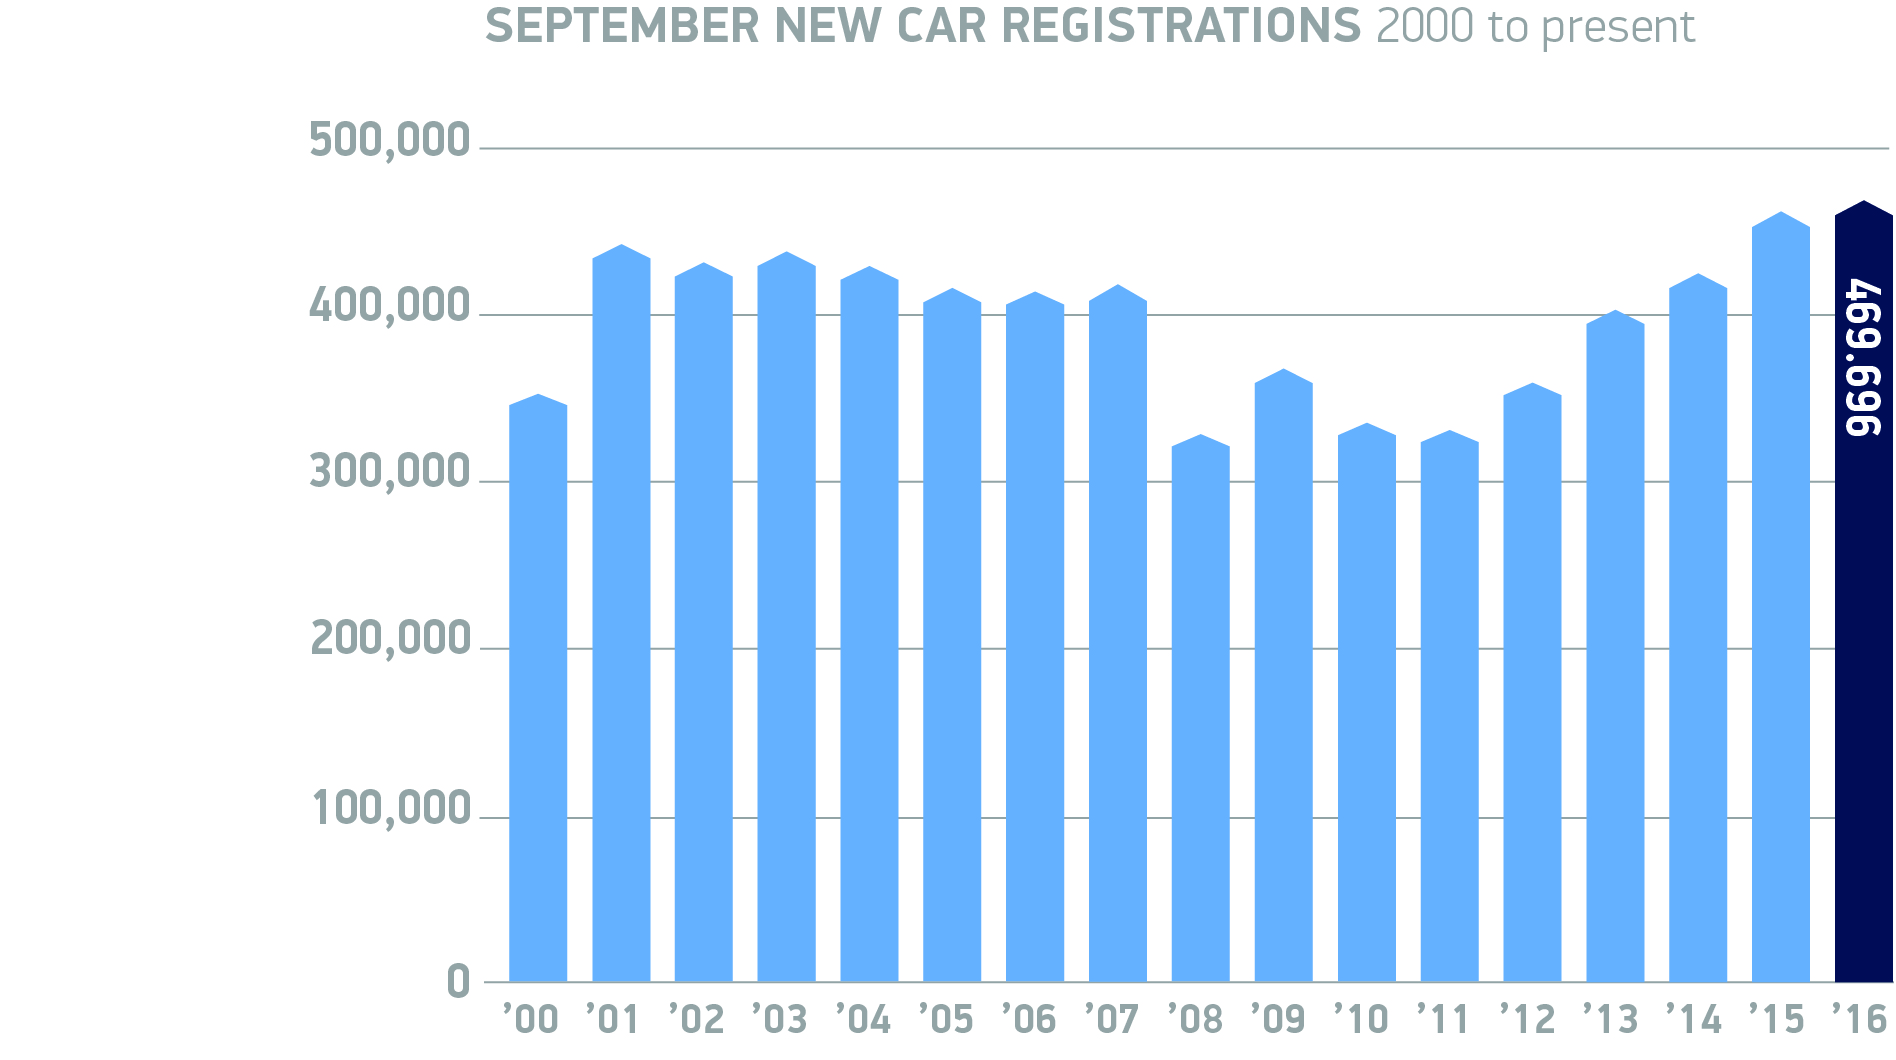 Over 2 Million Registrations So Far In 2016 As 66 Plate Drives New